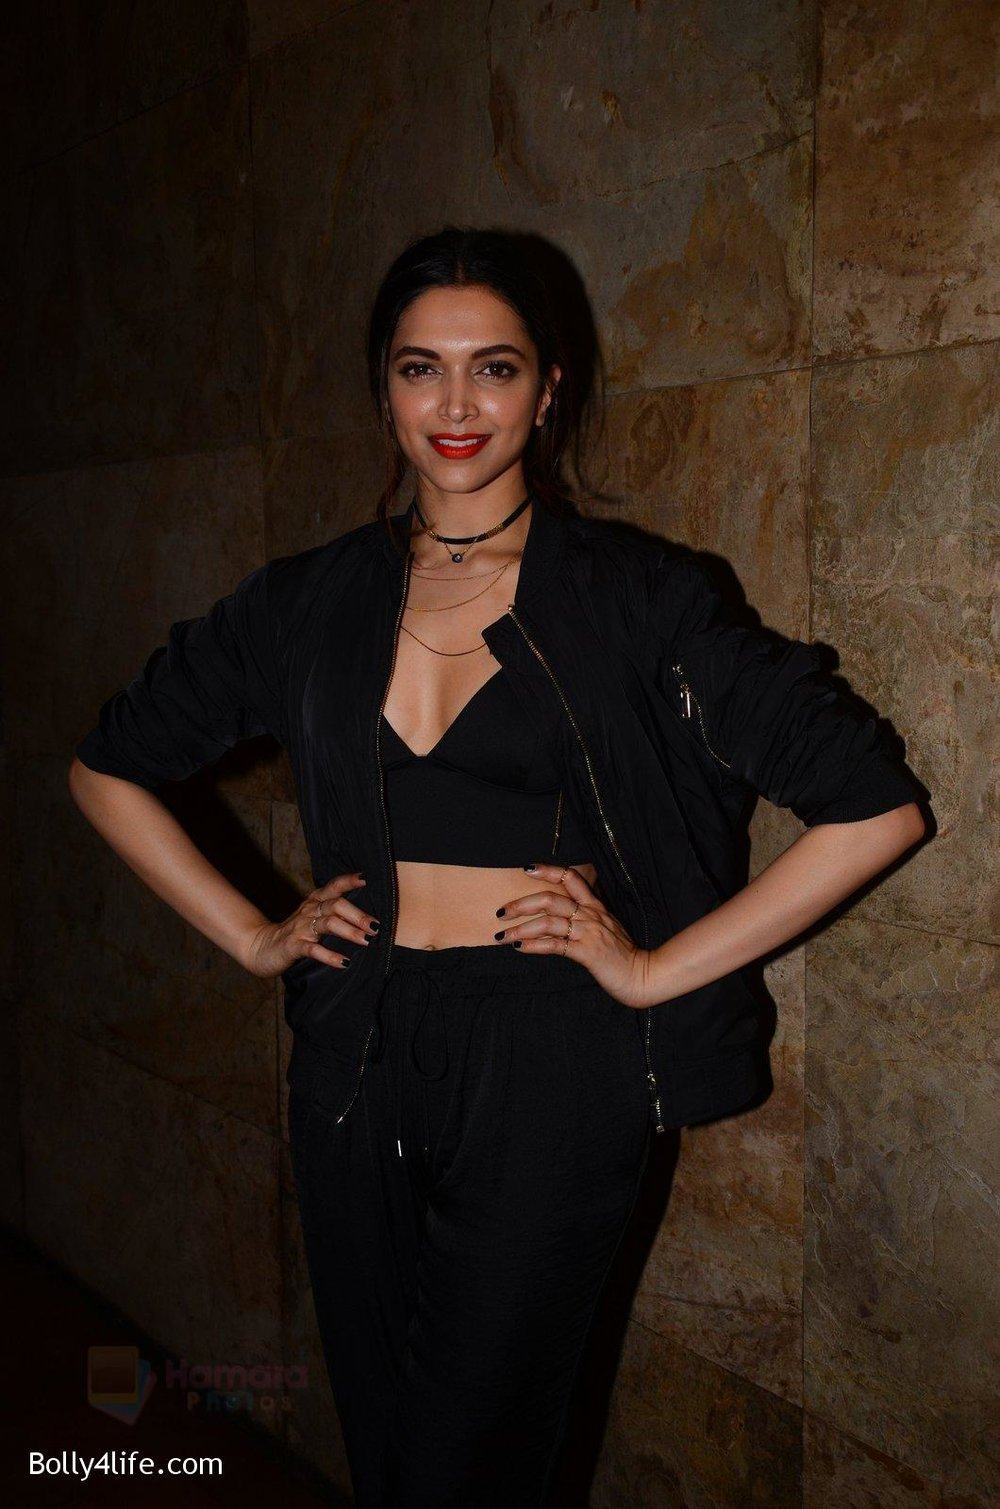 Deepika-Padukone-snapped-at-the-screening-in-lightbox-on-14th-Oct-201656.jpg